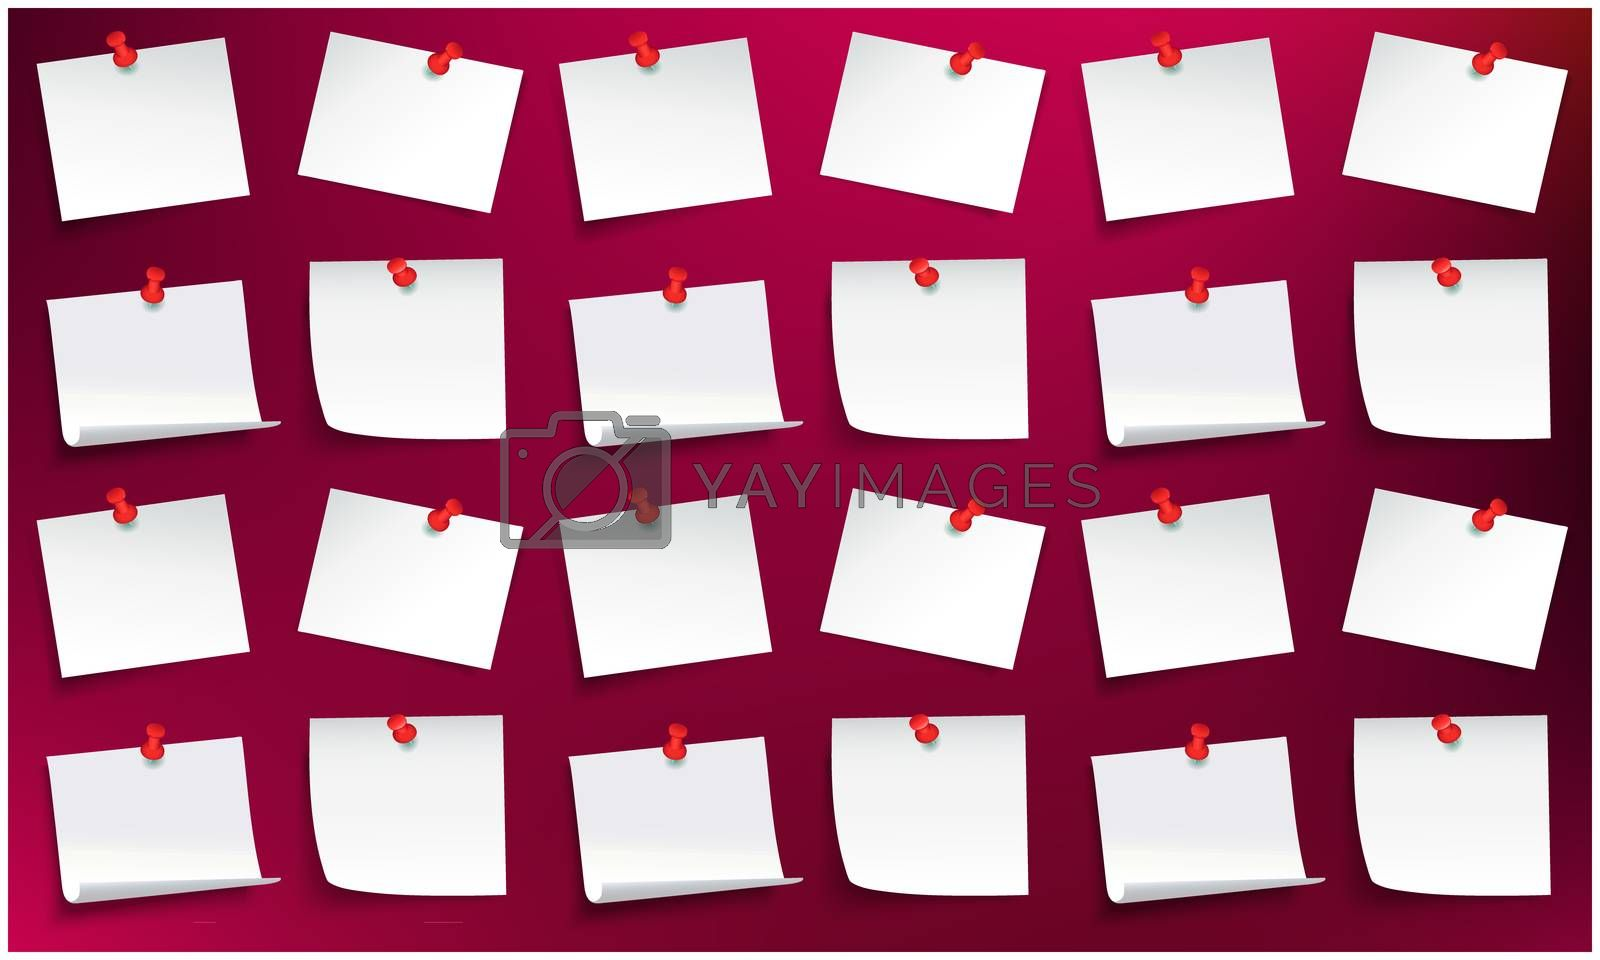 digital textile design of notes on abstract backgrounds